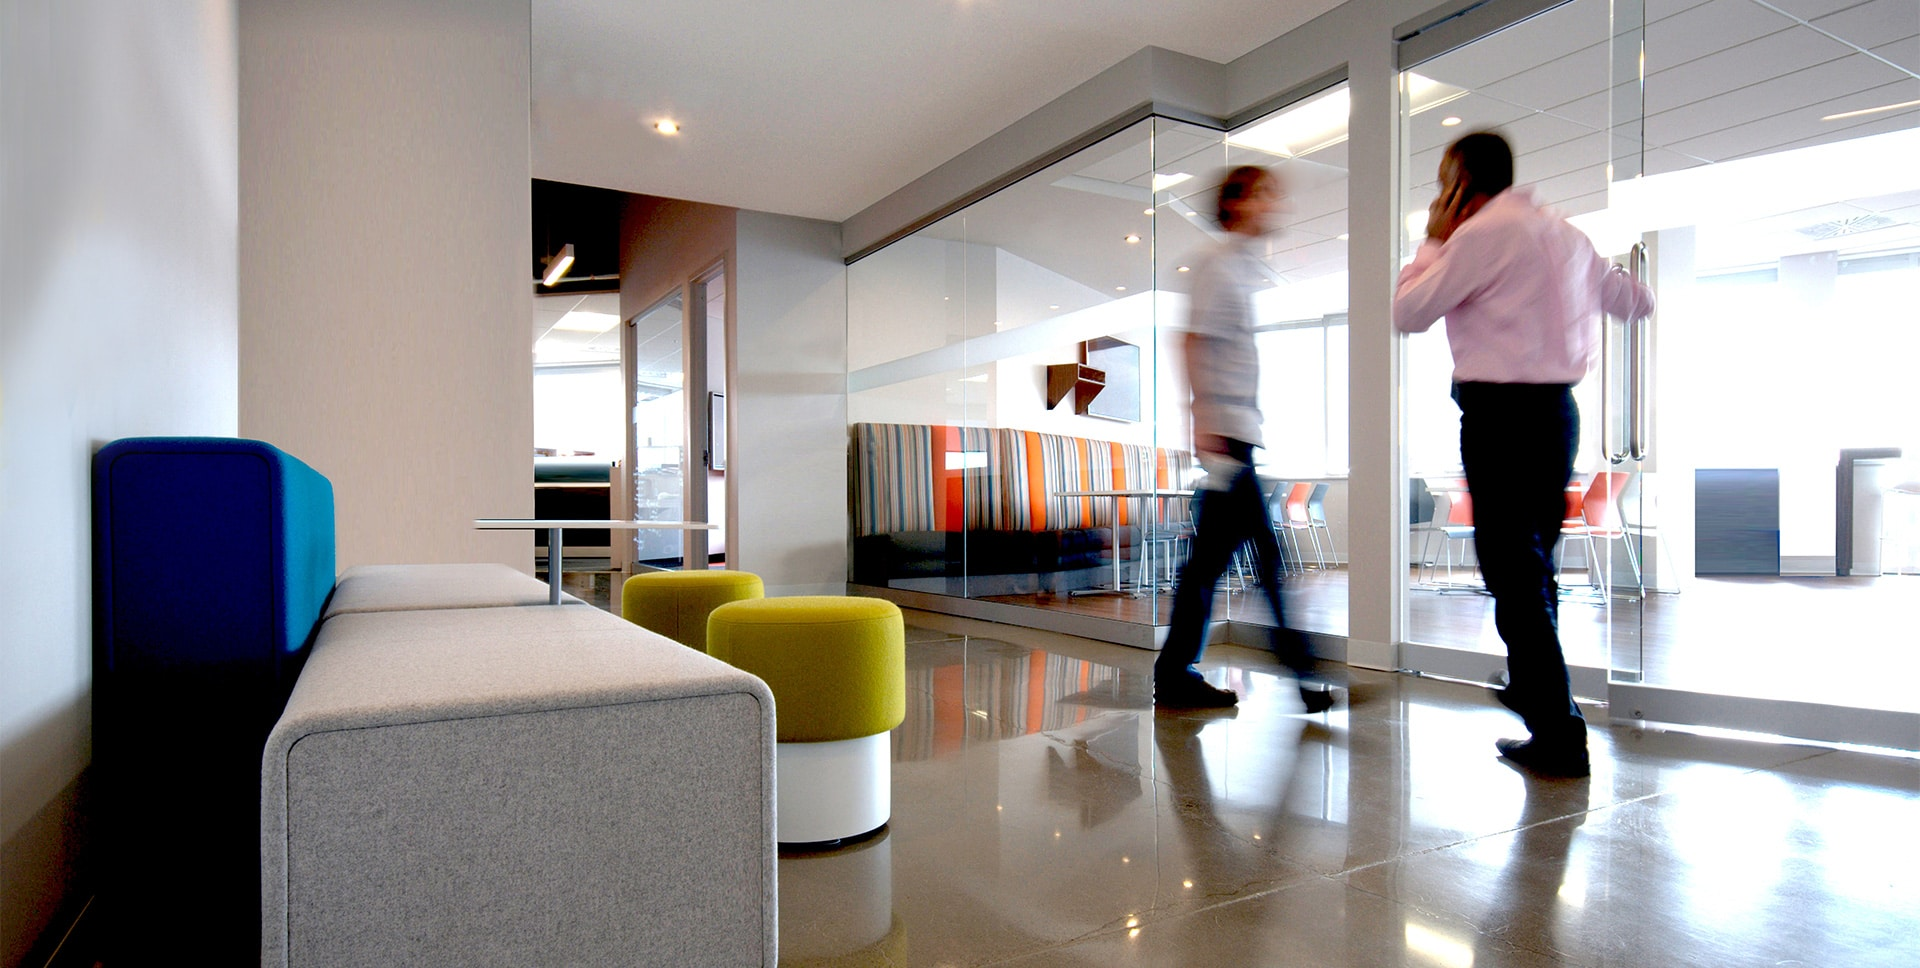 Hallway at Raglan Mine offices in Laval designed by VAD